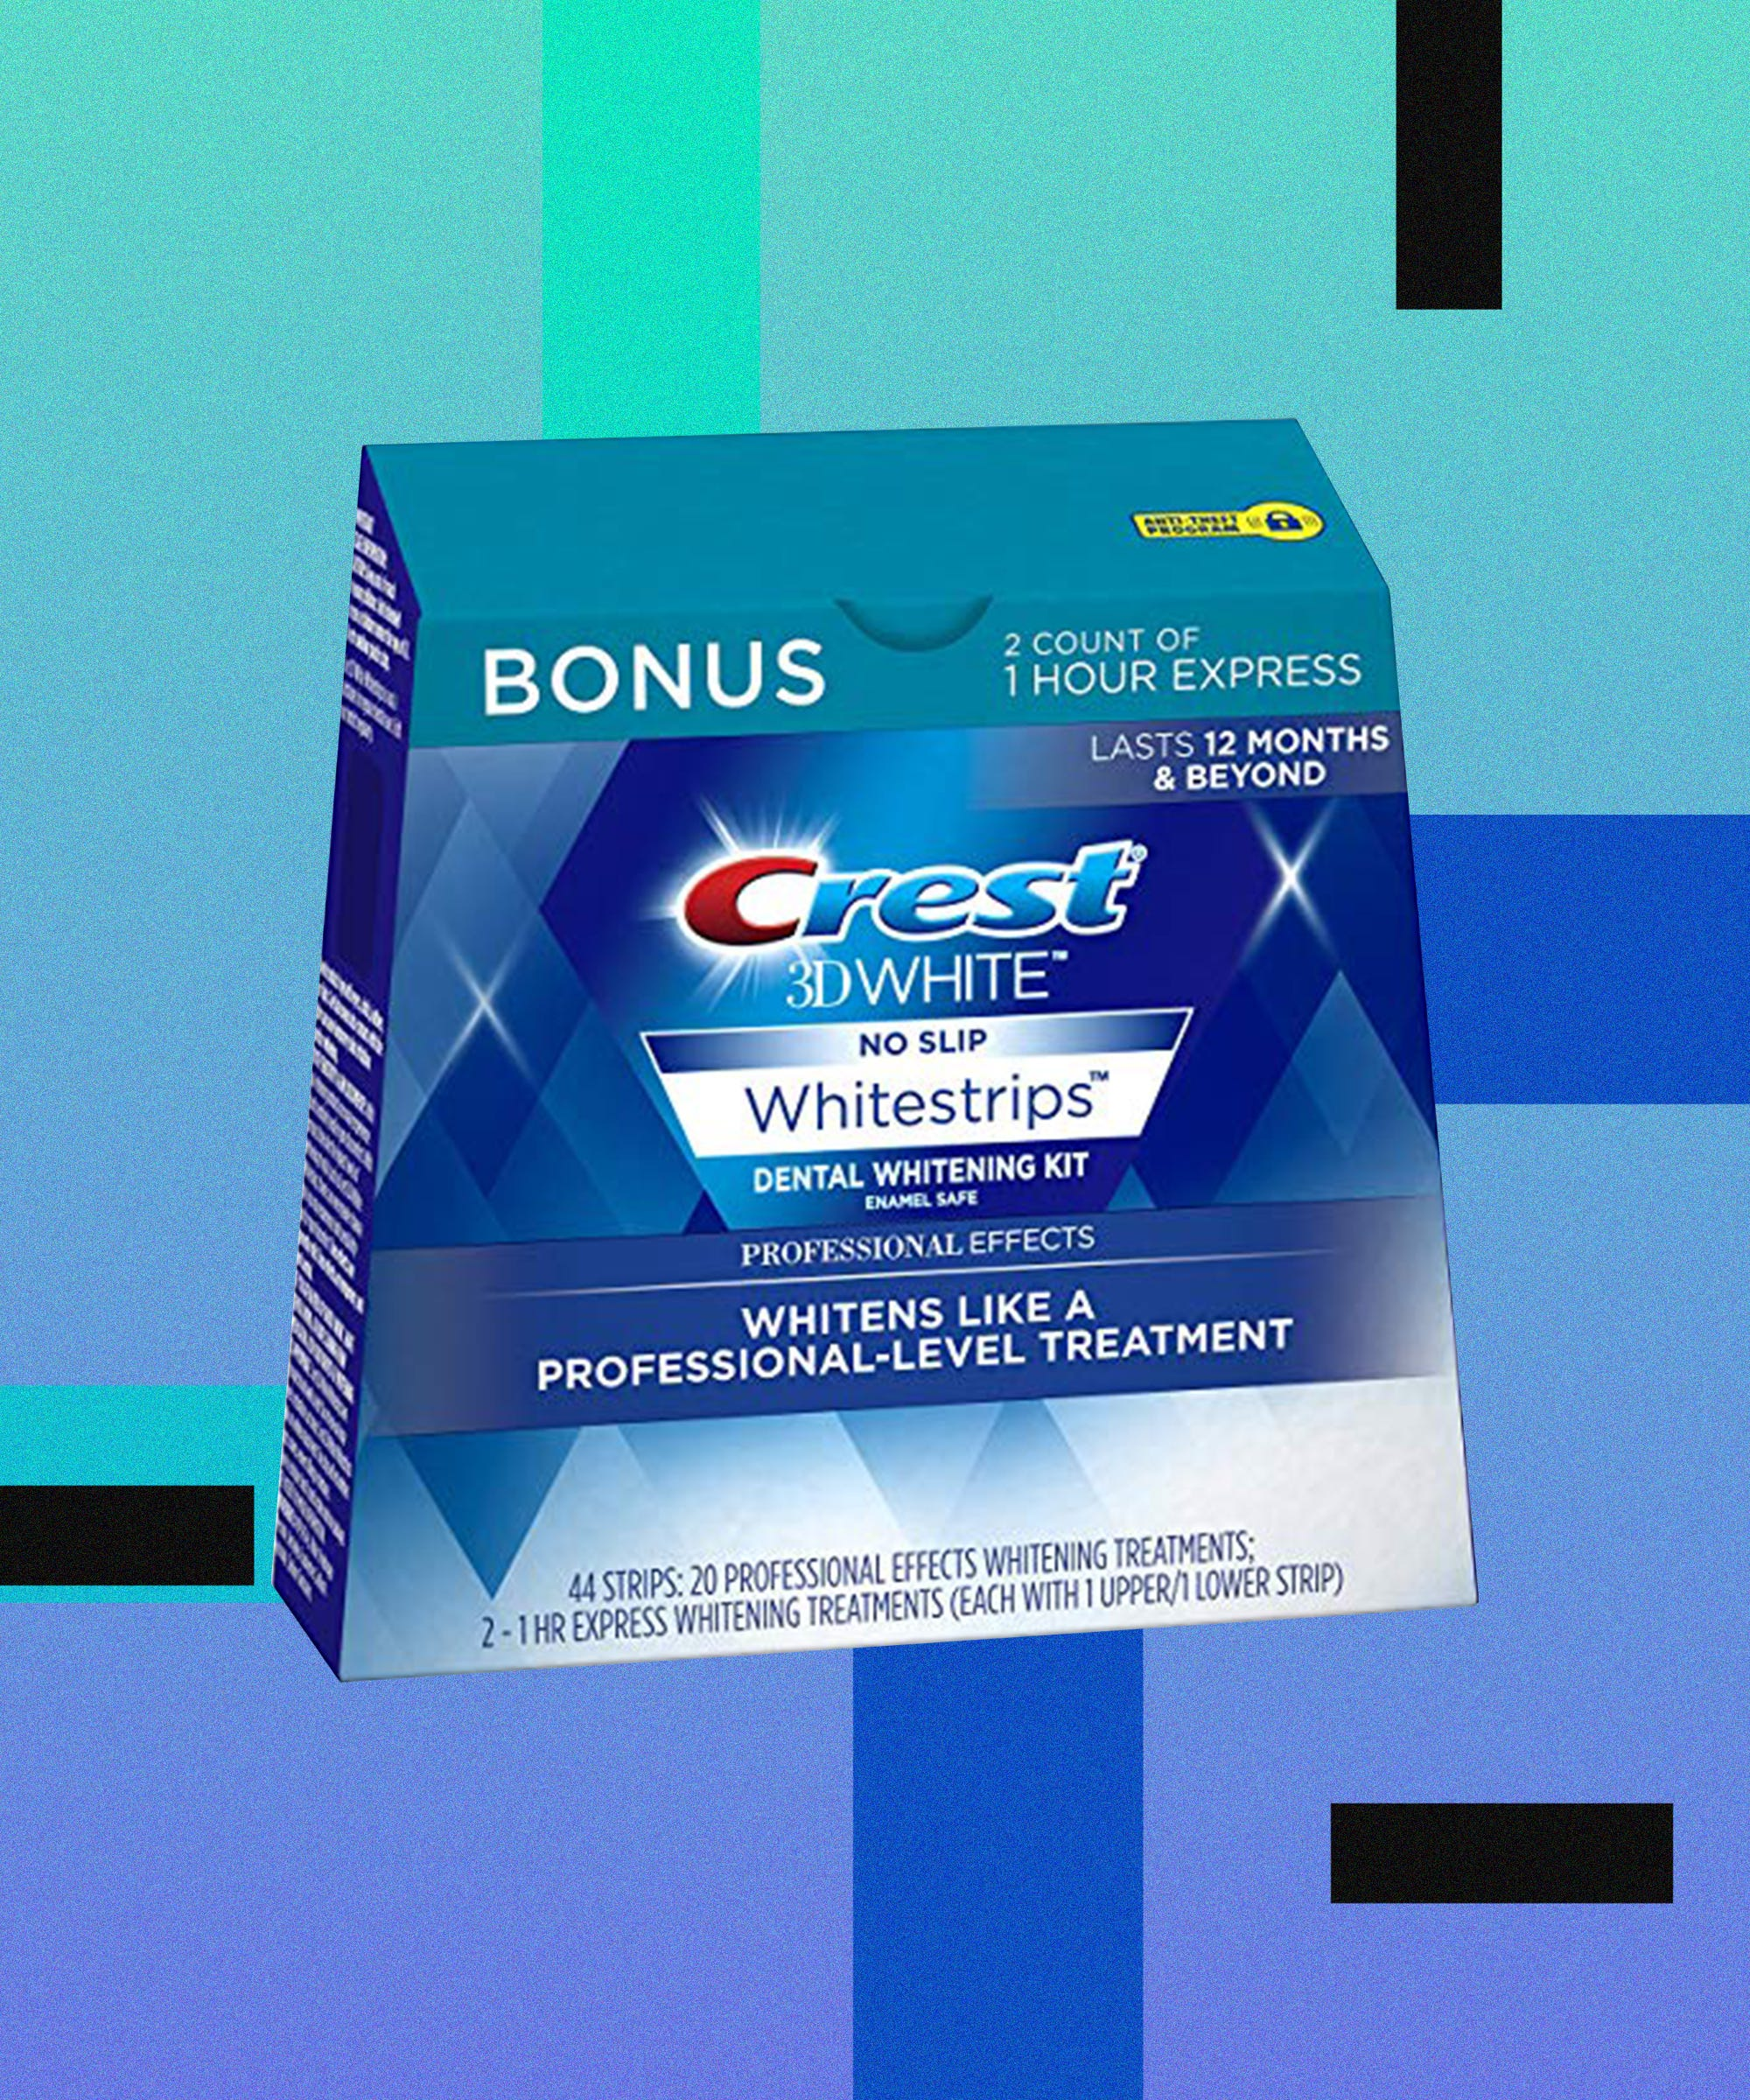 Crest 3d Whitestrips Amazon Prime Day Deal Over 60 Off